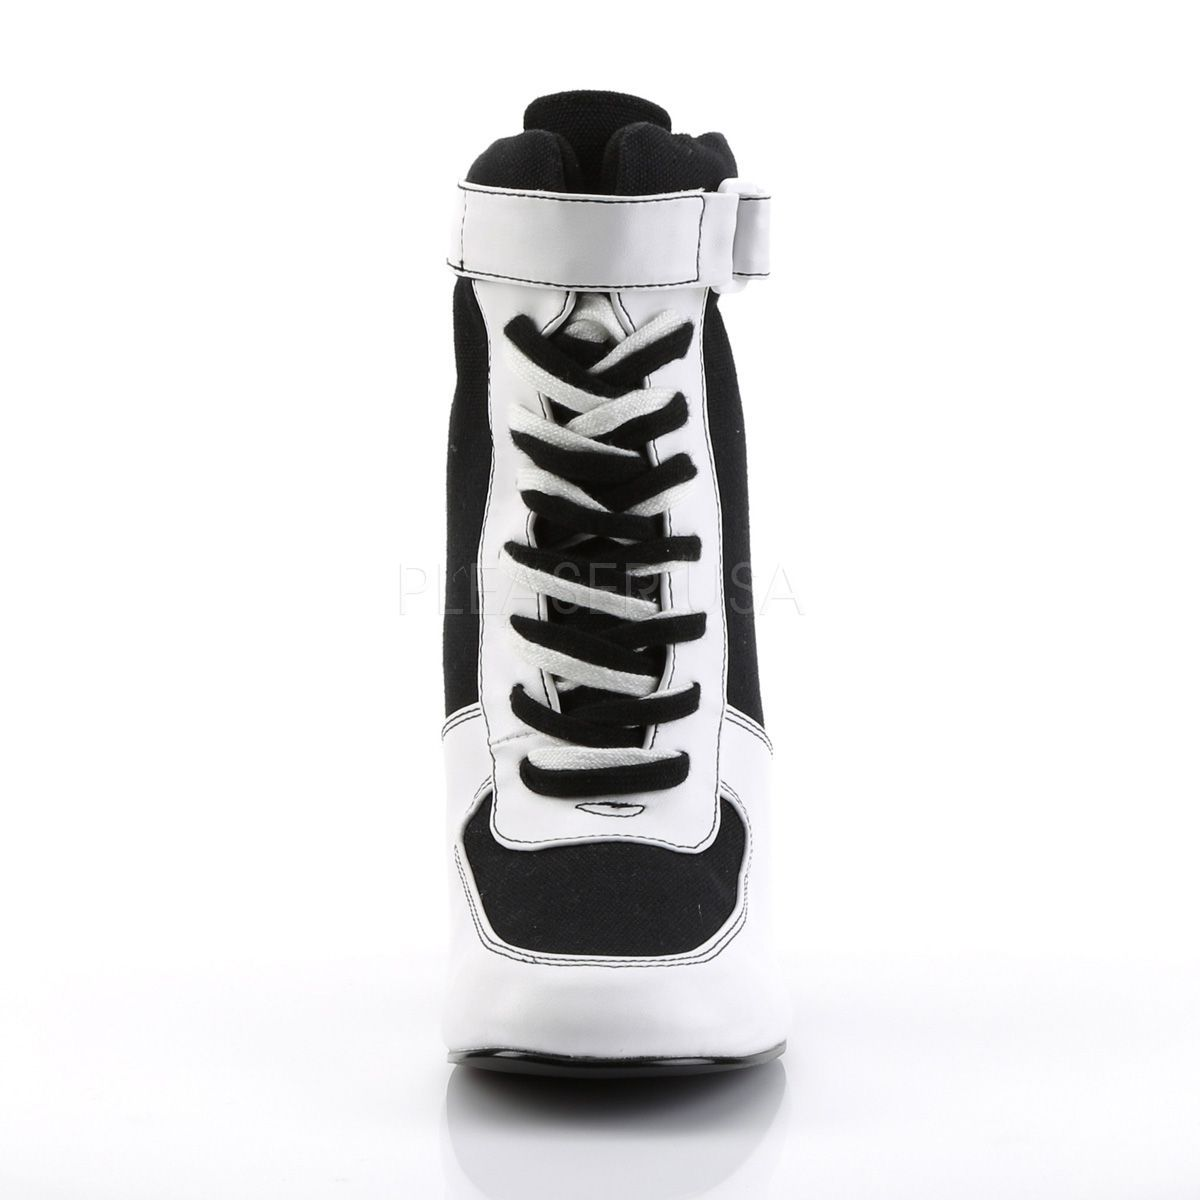 Bota Referee 125 Sport BlacK & White Cano Curto - Funtasma (encomenda)